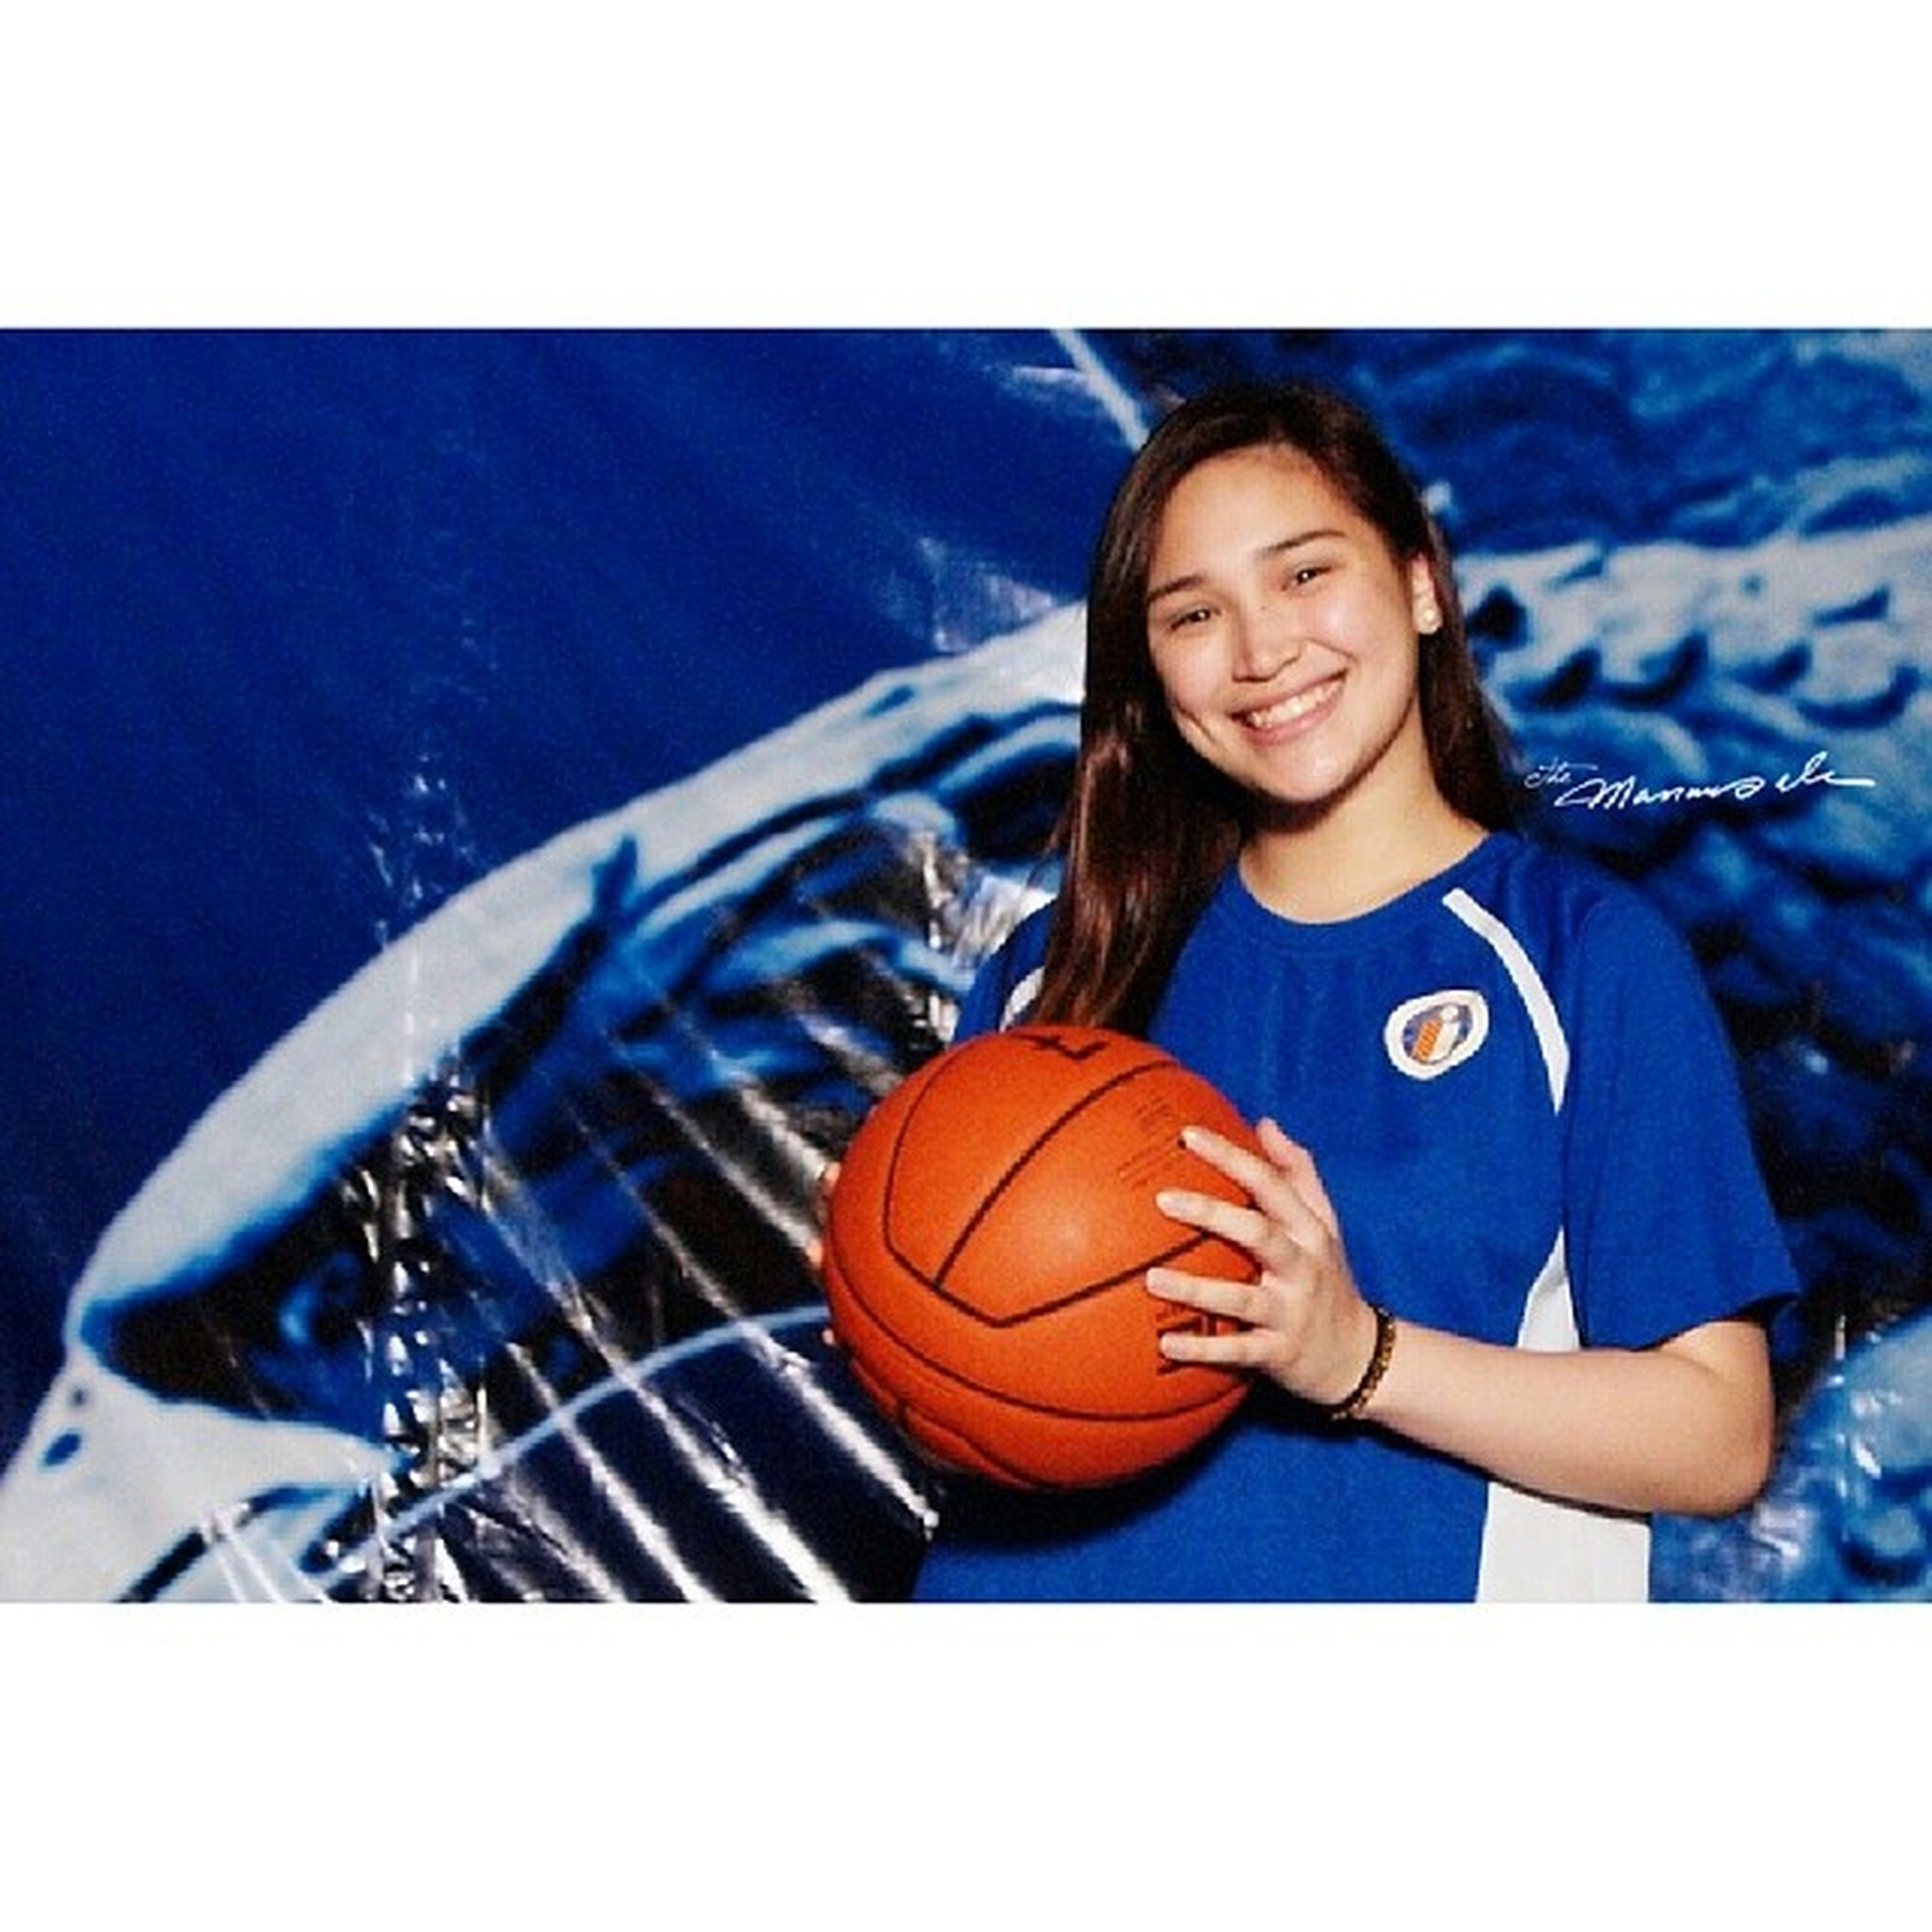 Happy birthday! @bettinajose Agb AteneogloryB Studentmanager Basketball